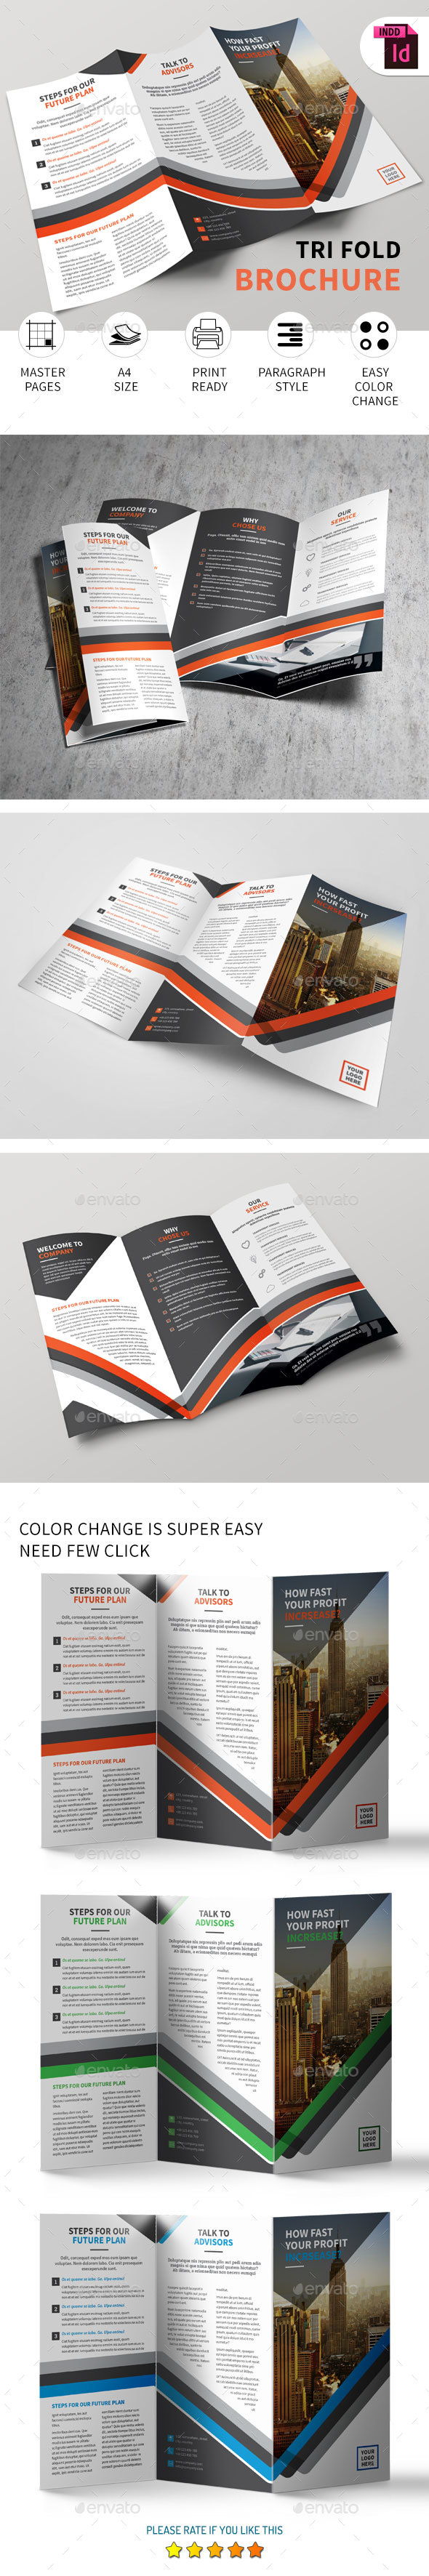 Tri-fold Brochure Vol.9 - Corporate Brochures